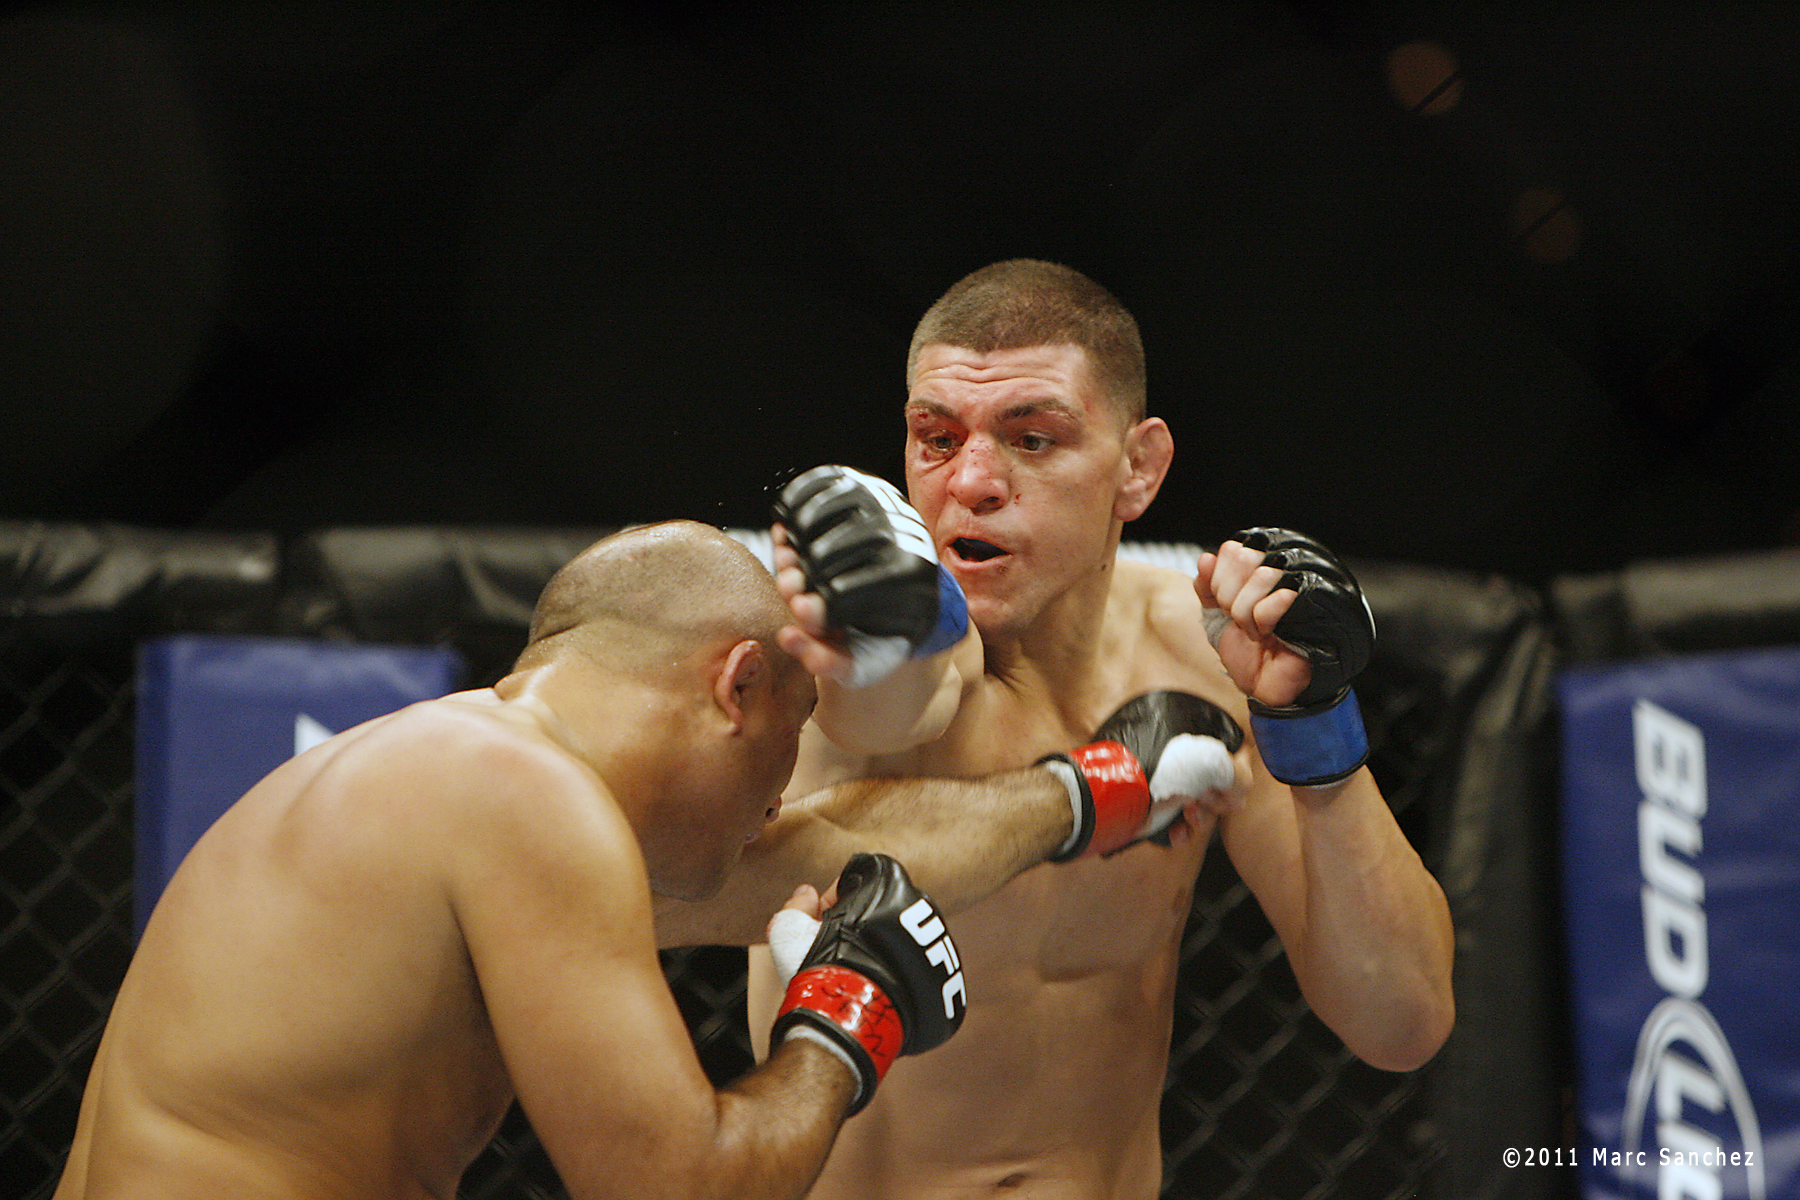 29 October 2011: Nick Diaz during the UFC 137 at the Mandalay Bay Arena in Las Vegas, Nevada.